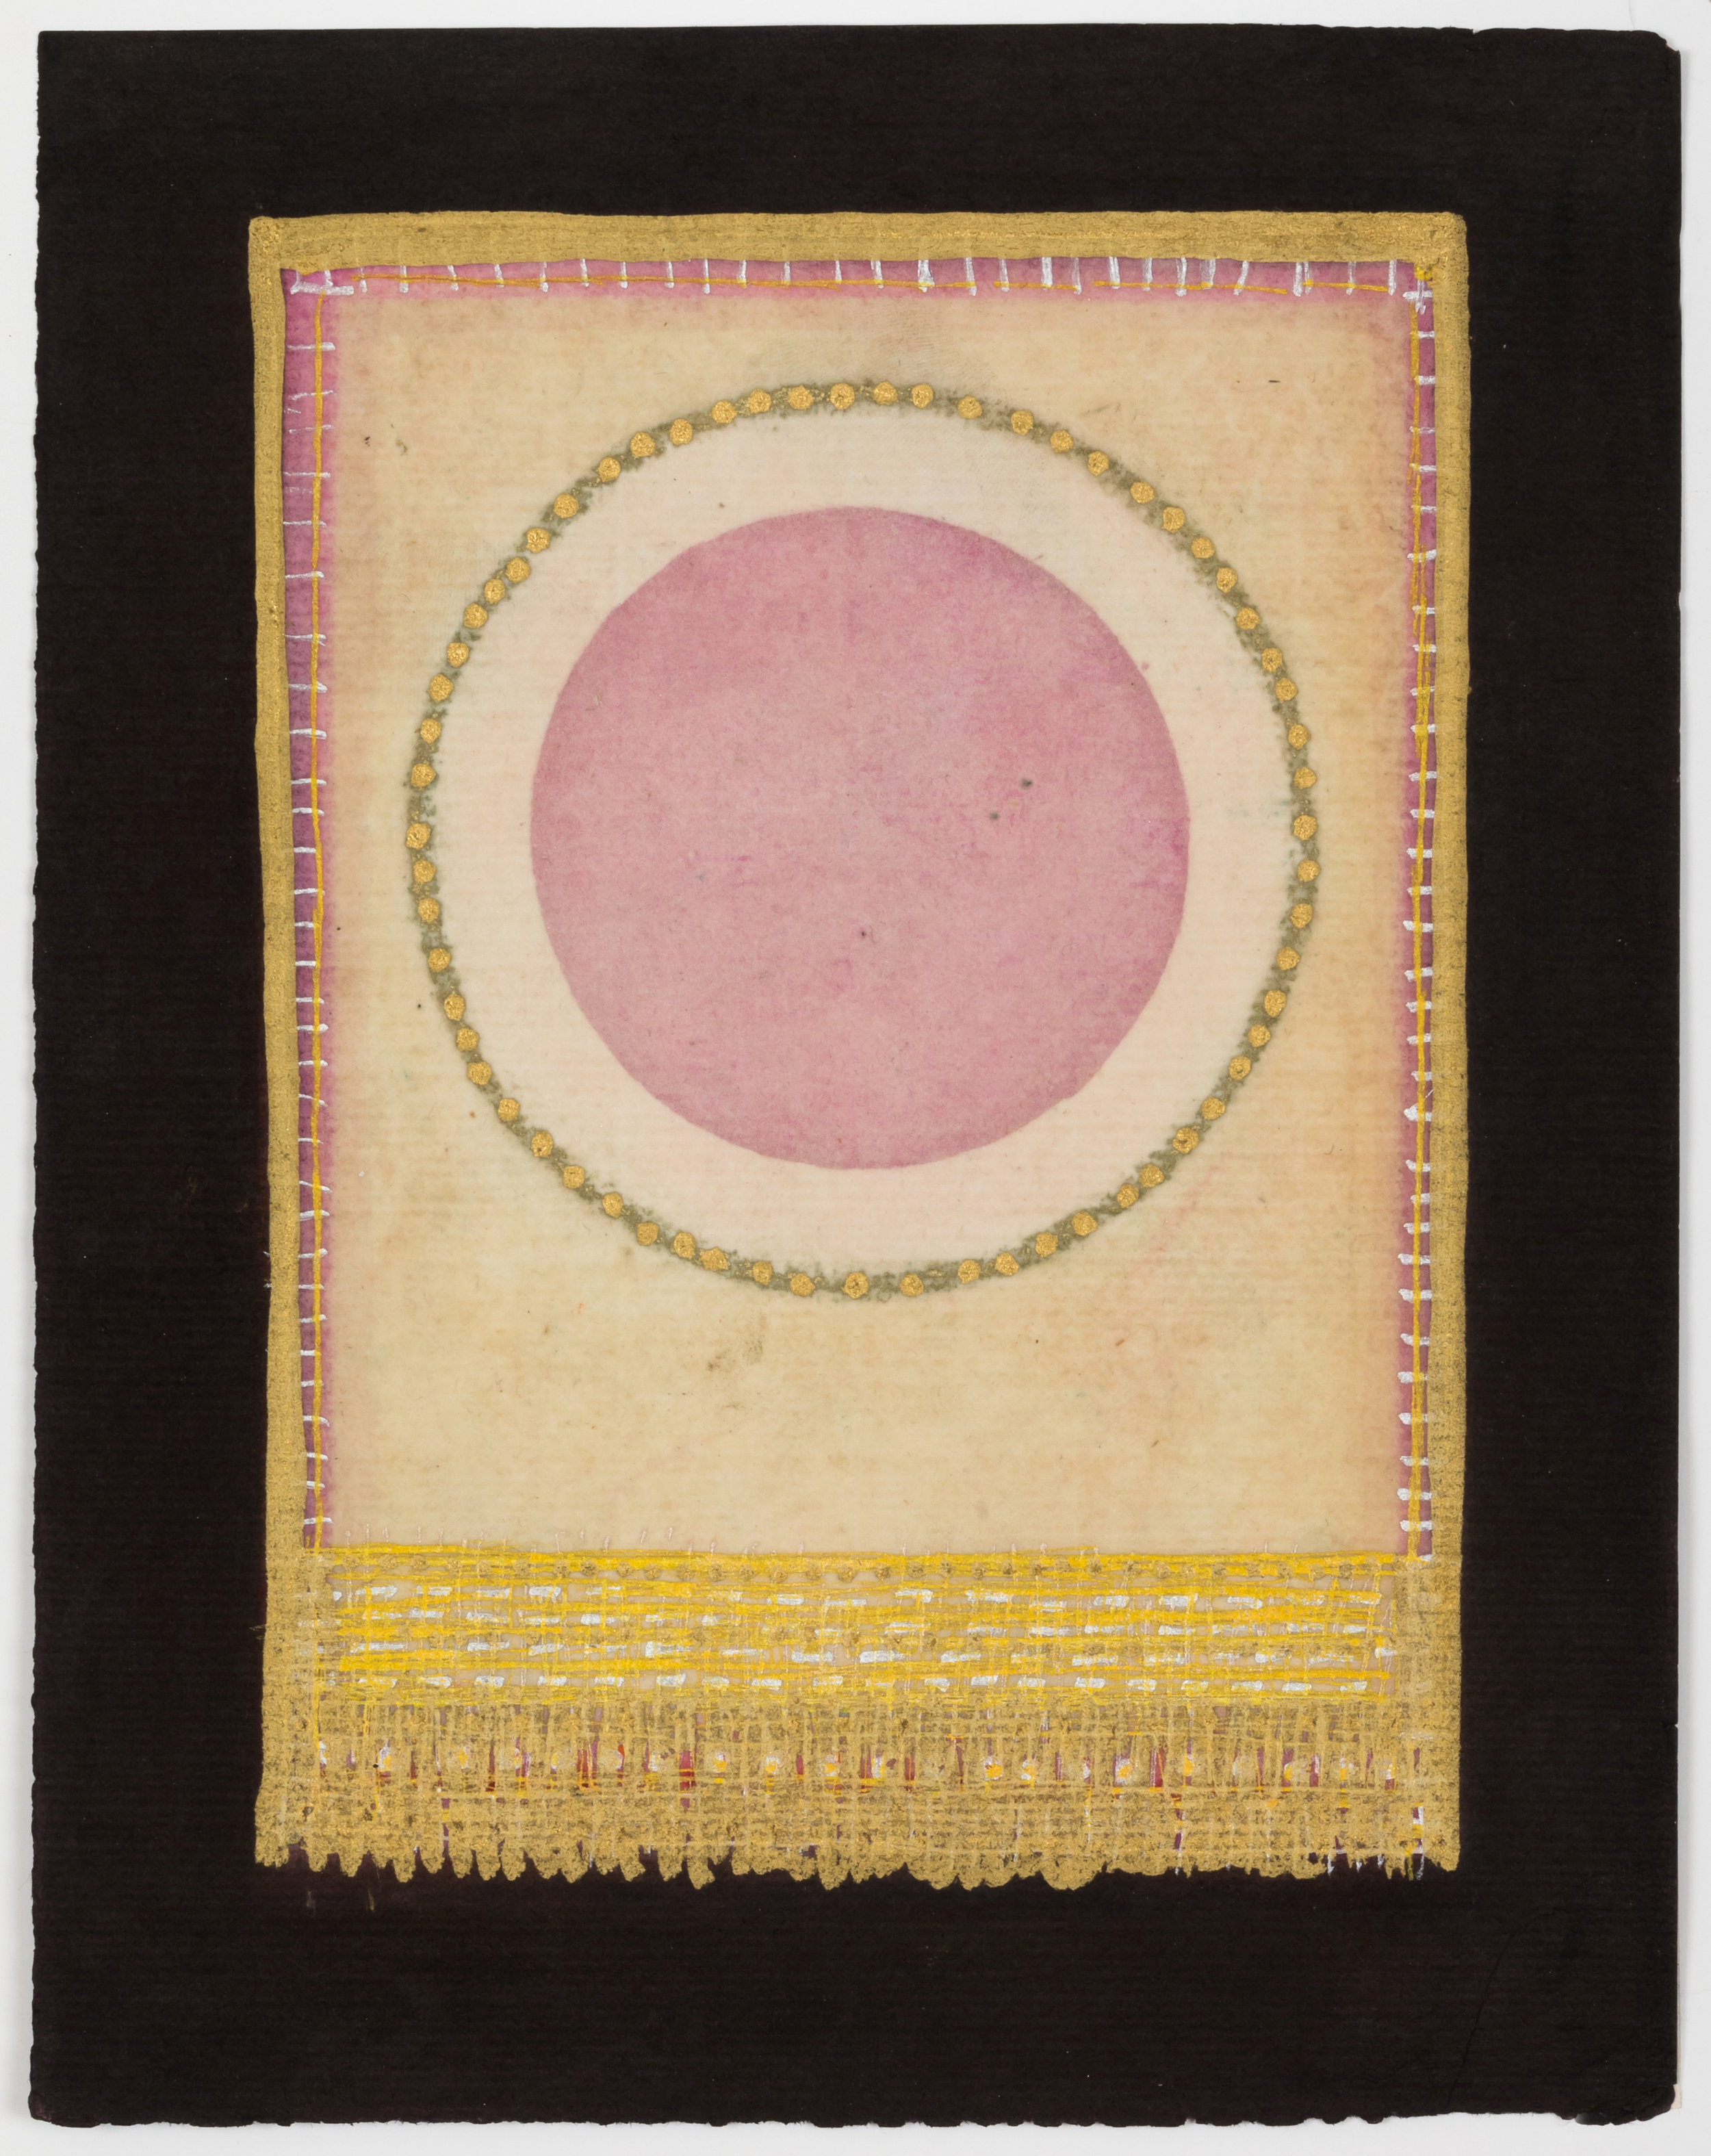 Olivia Munroe  Histories, 248 , 2016 beeswax, ink, metallic powder on vintage hand made paper  9 3/4 × 7 5/8 in.